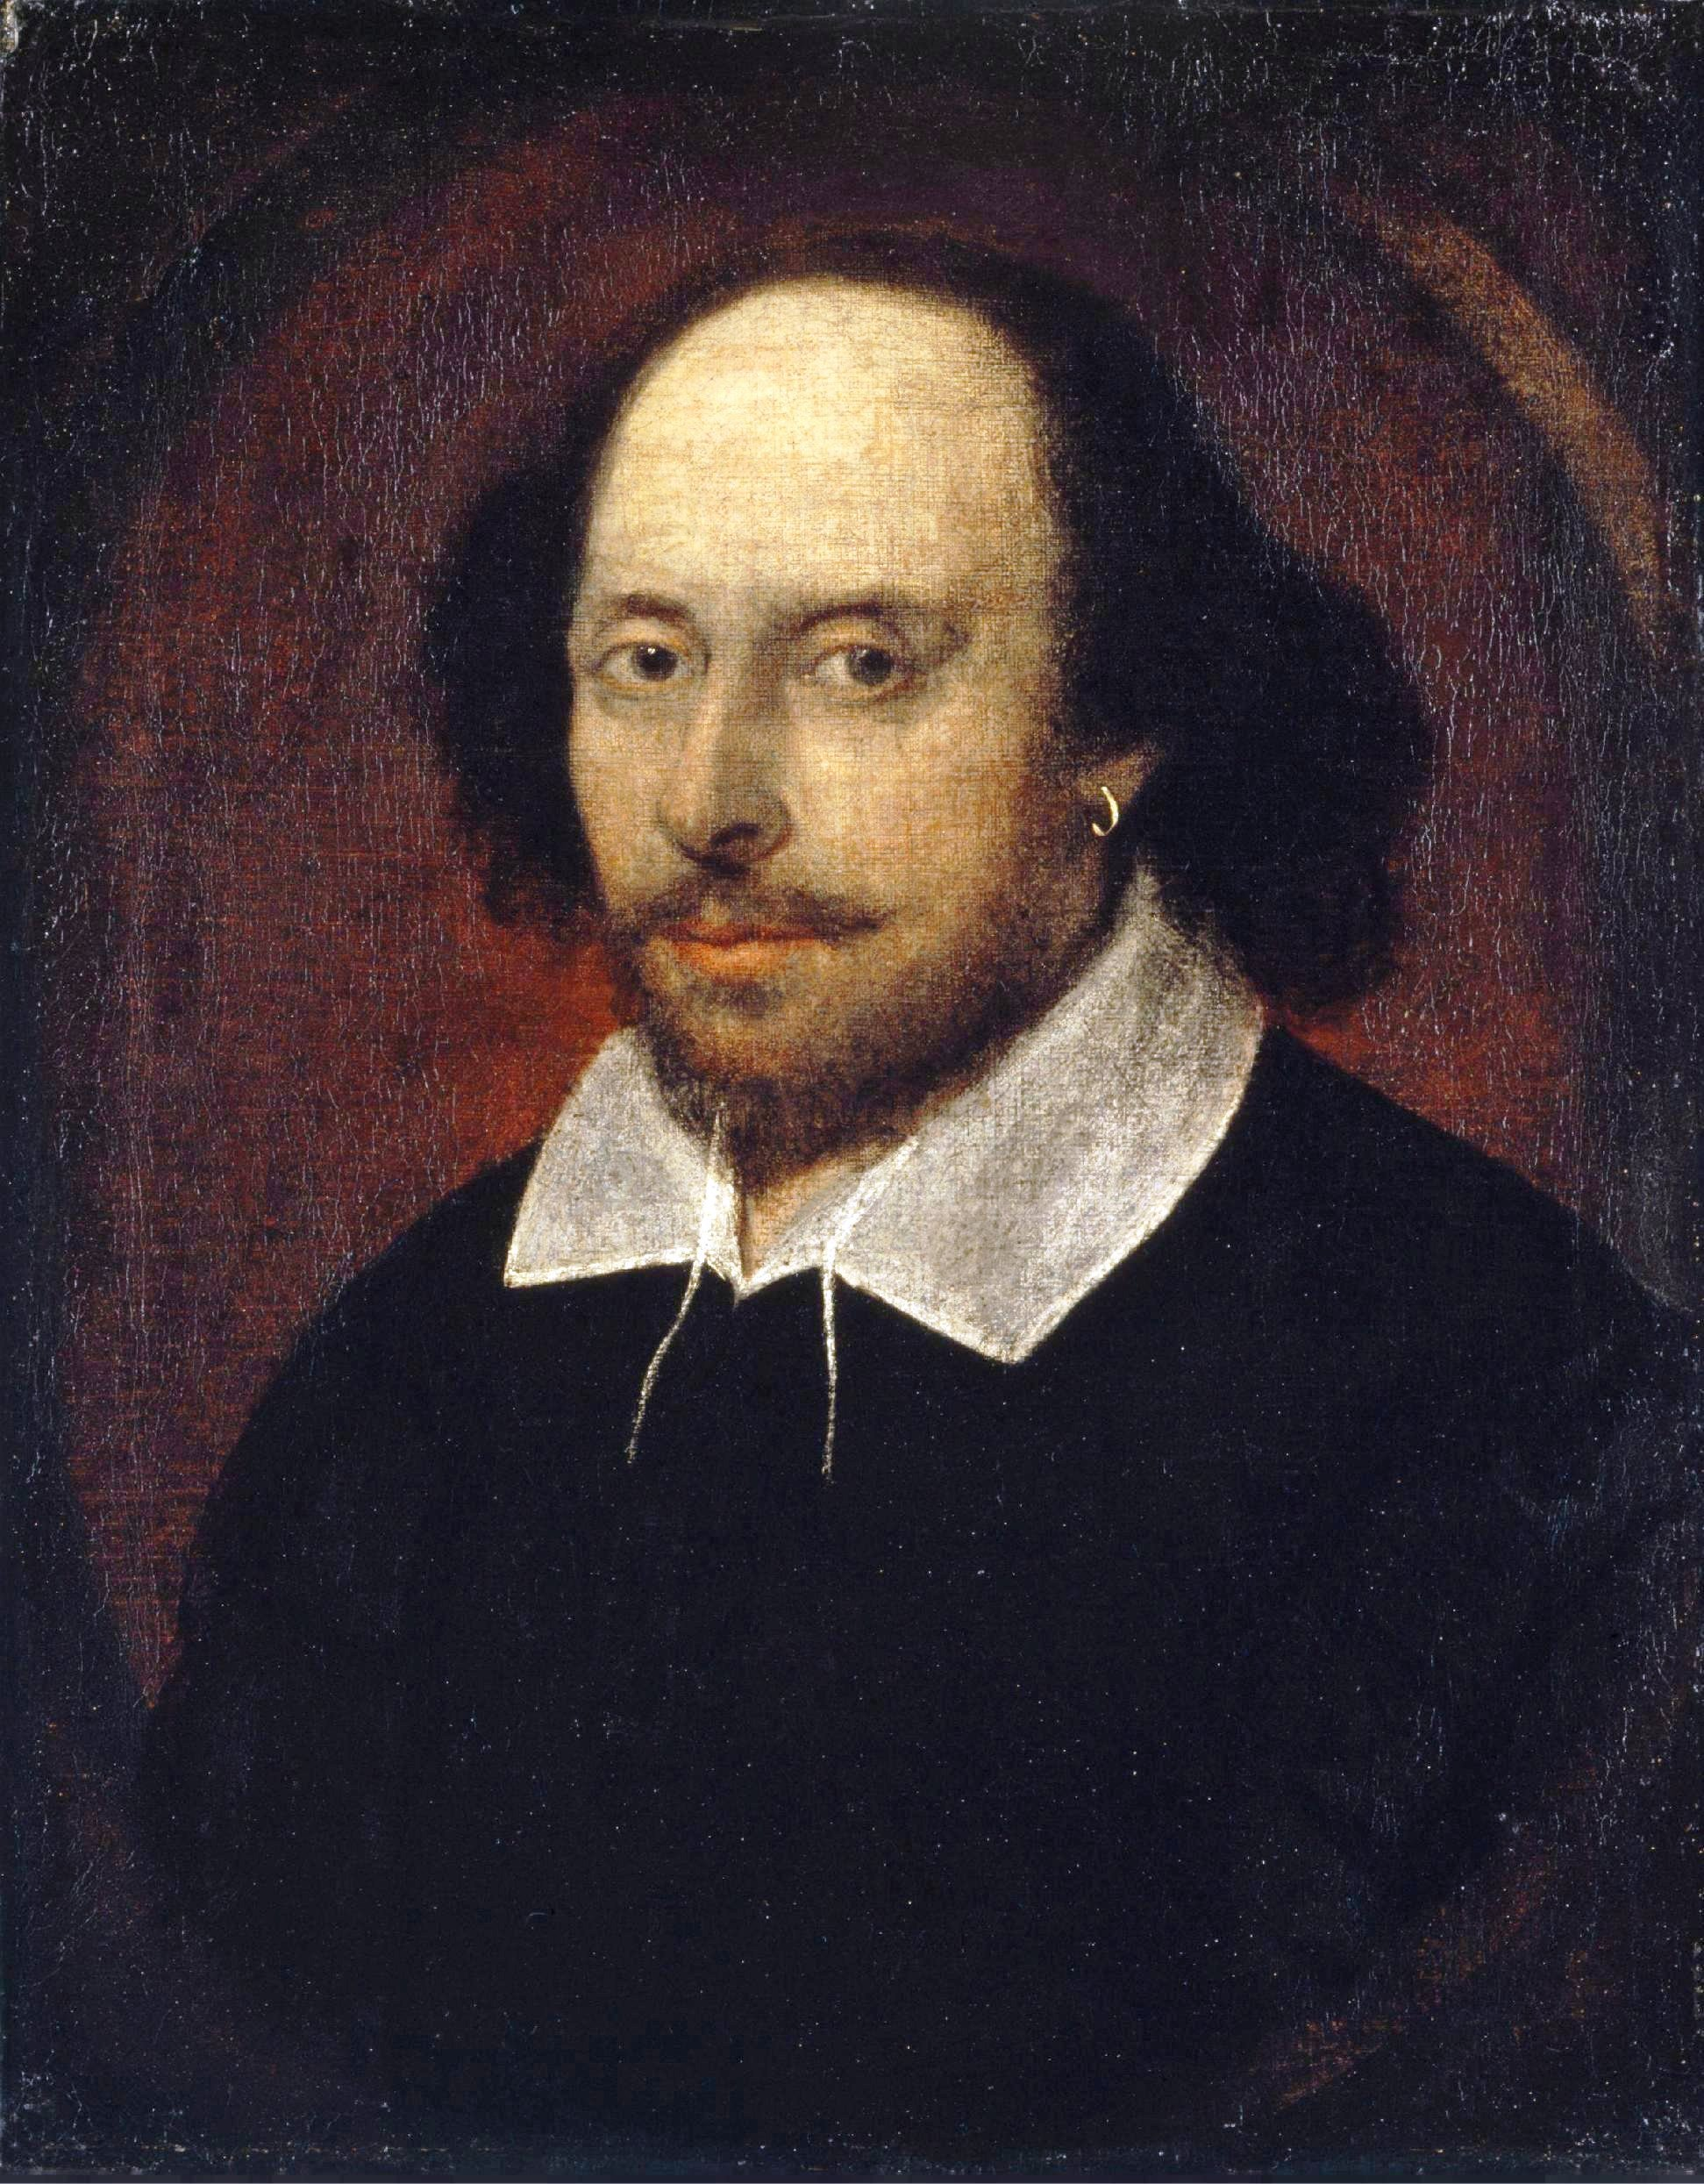 William Shakespeare (1564-1616): authorship and parentage being investigated by Icons of Europe, Brussels.